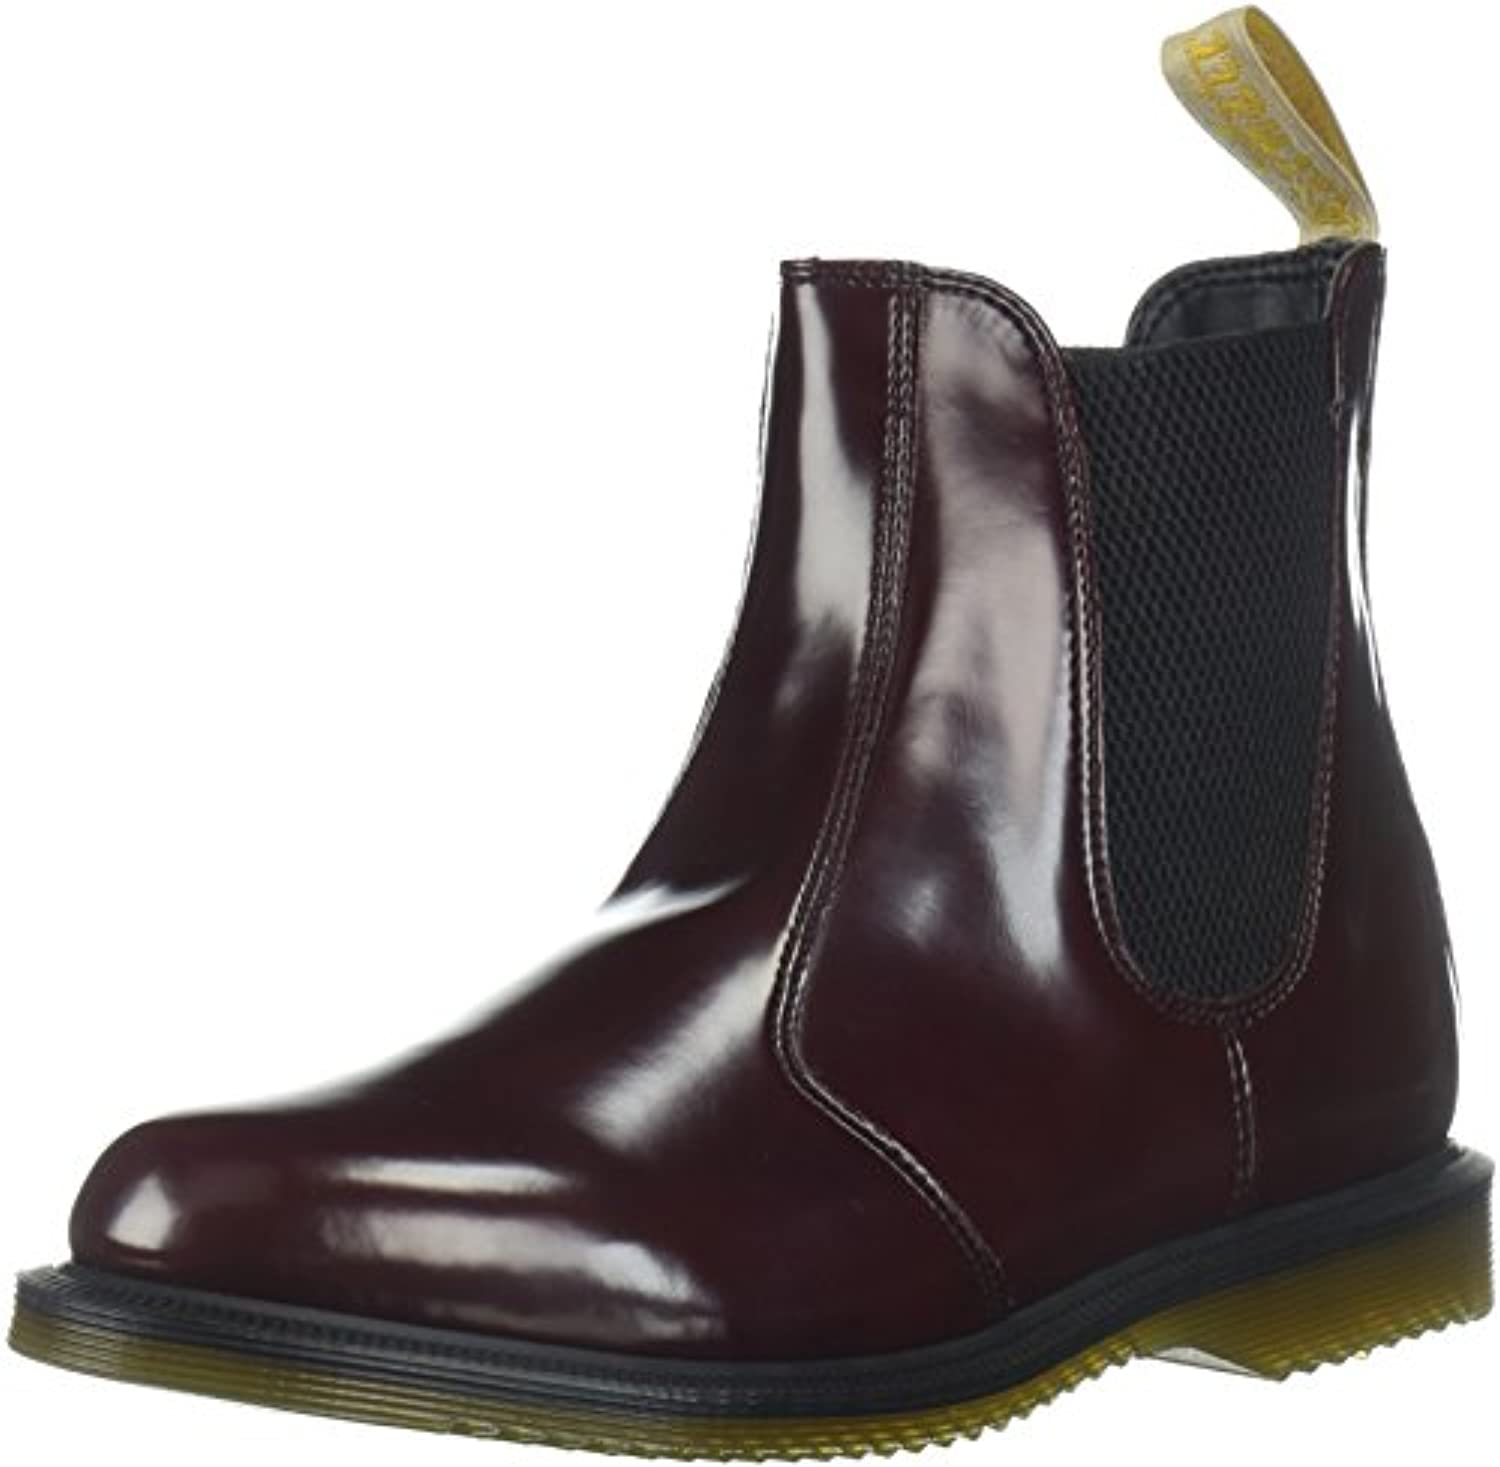 Dr. Dr. Dr. Martens Flora Polished Smooth W Stivale | Un equilibrio tra robustezza e durezza